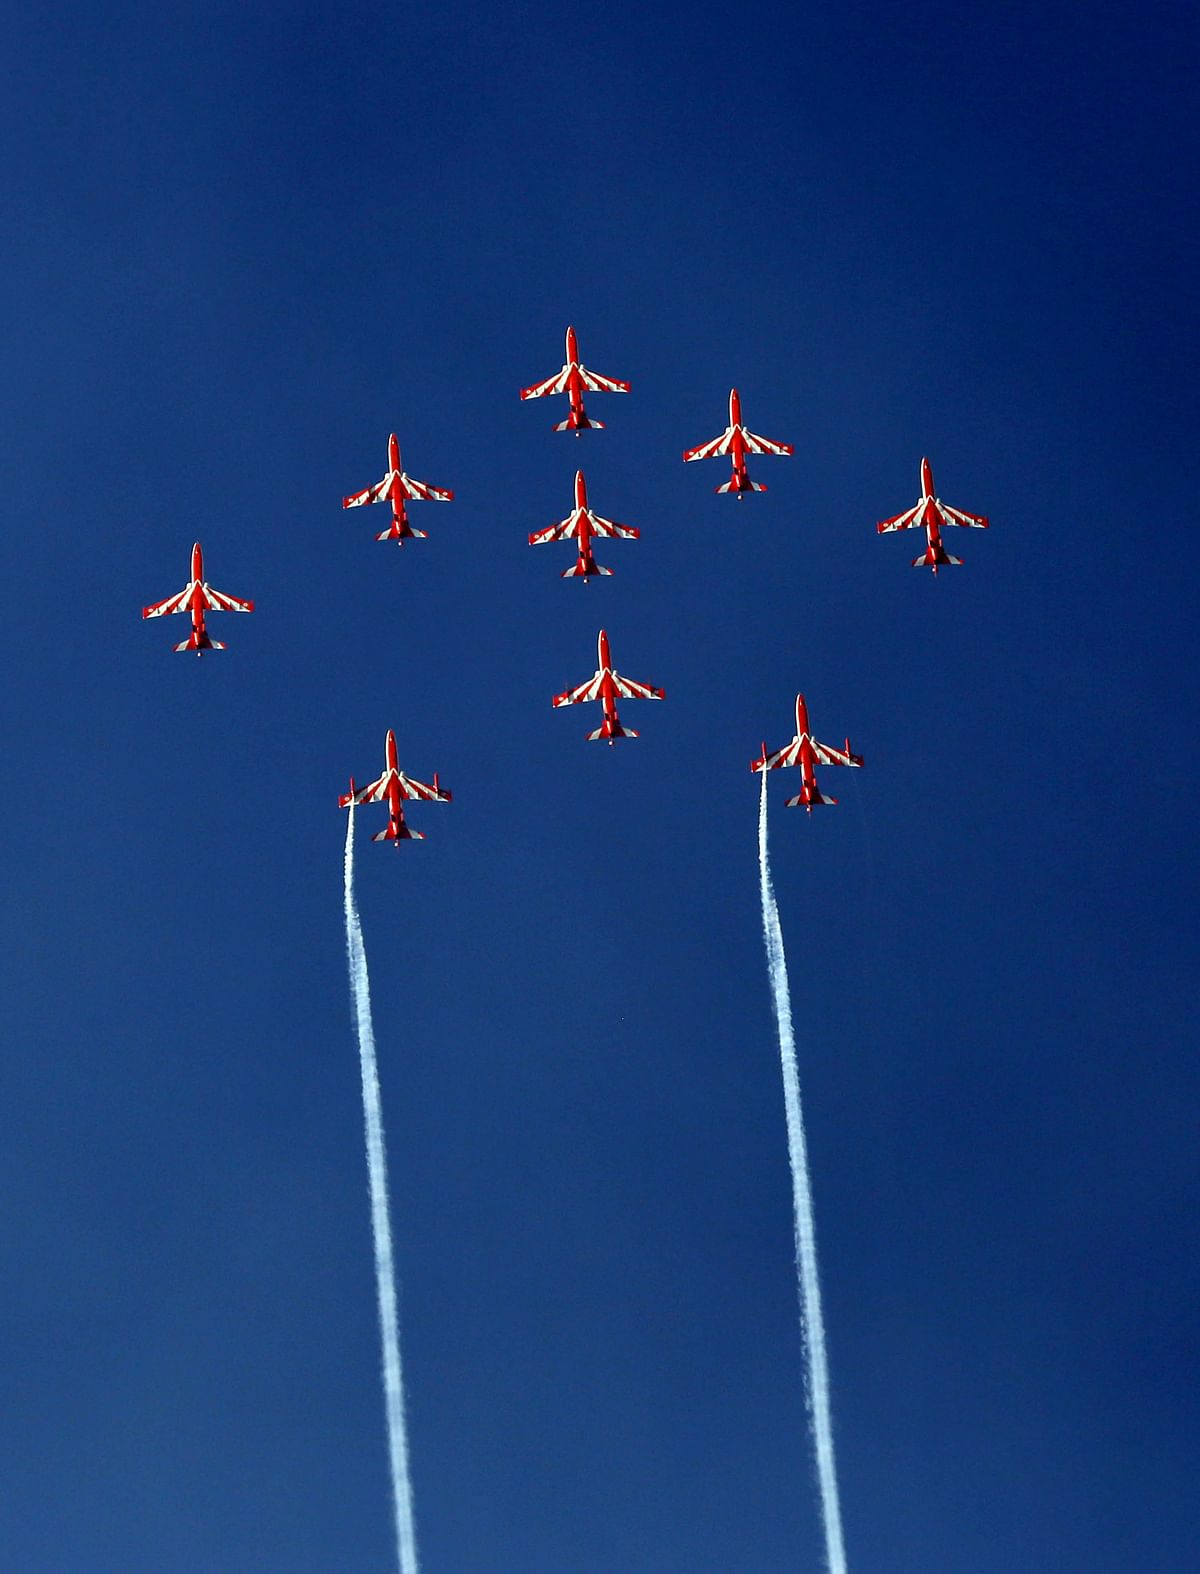 First-of-its-kind air show along Dal banks on Sep 26